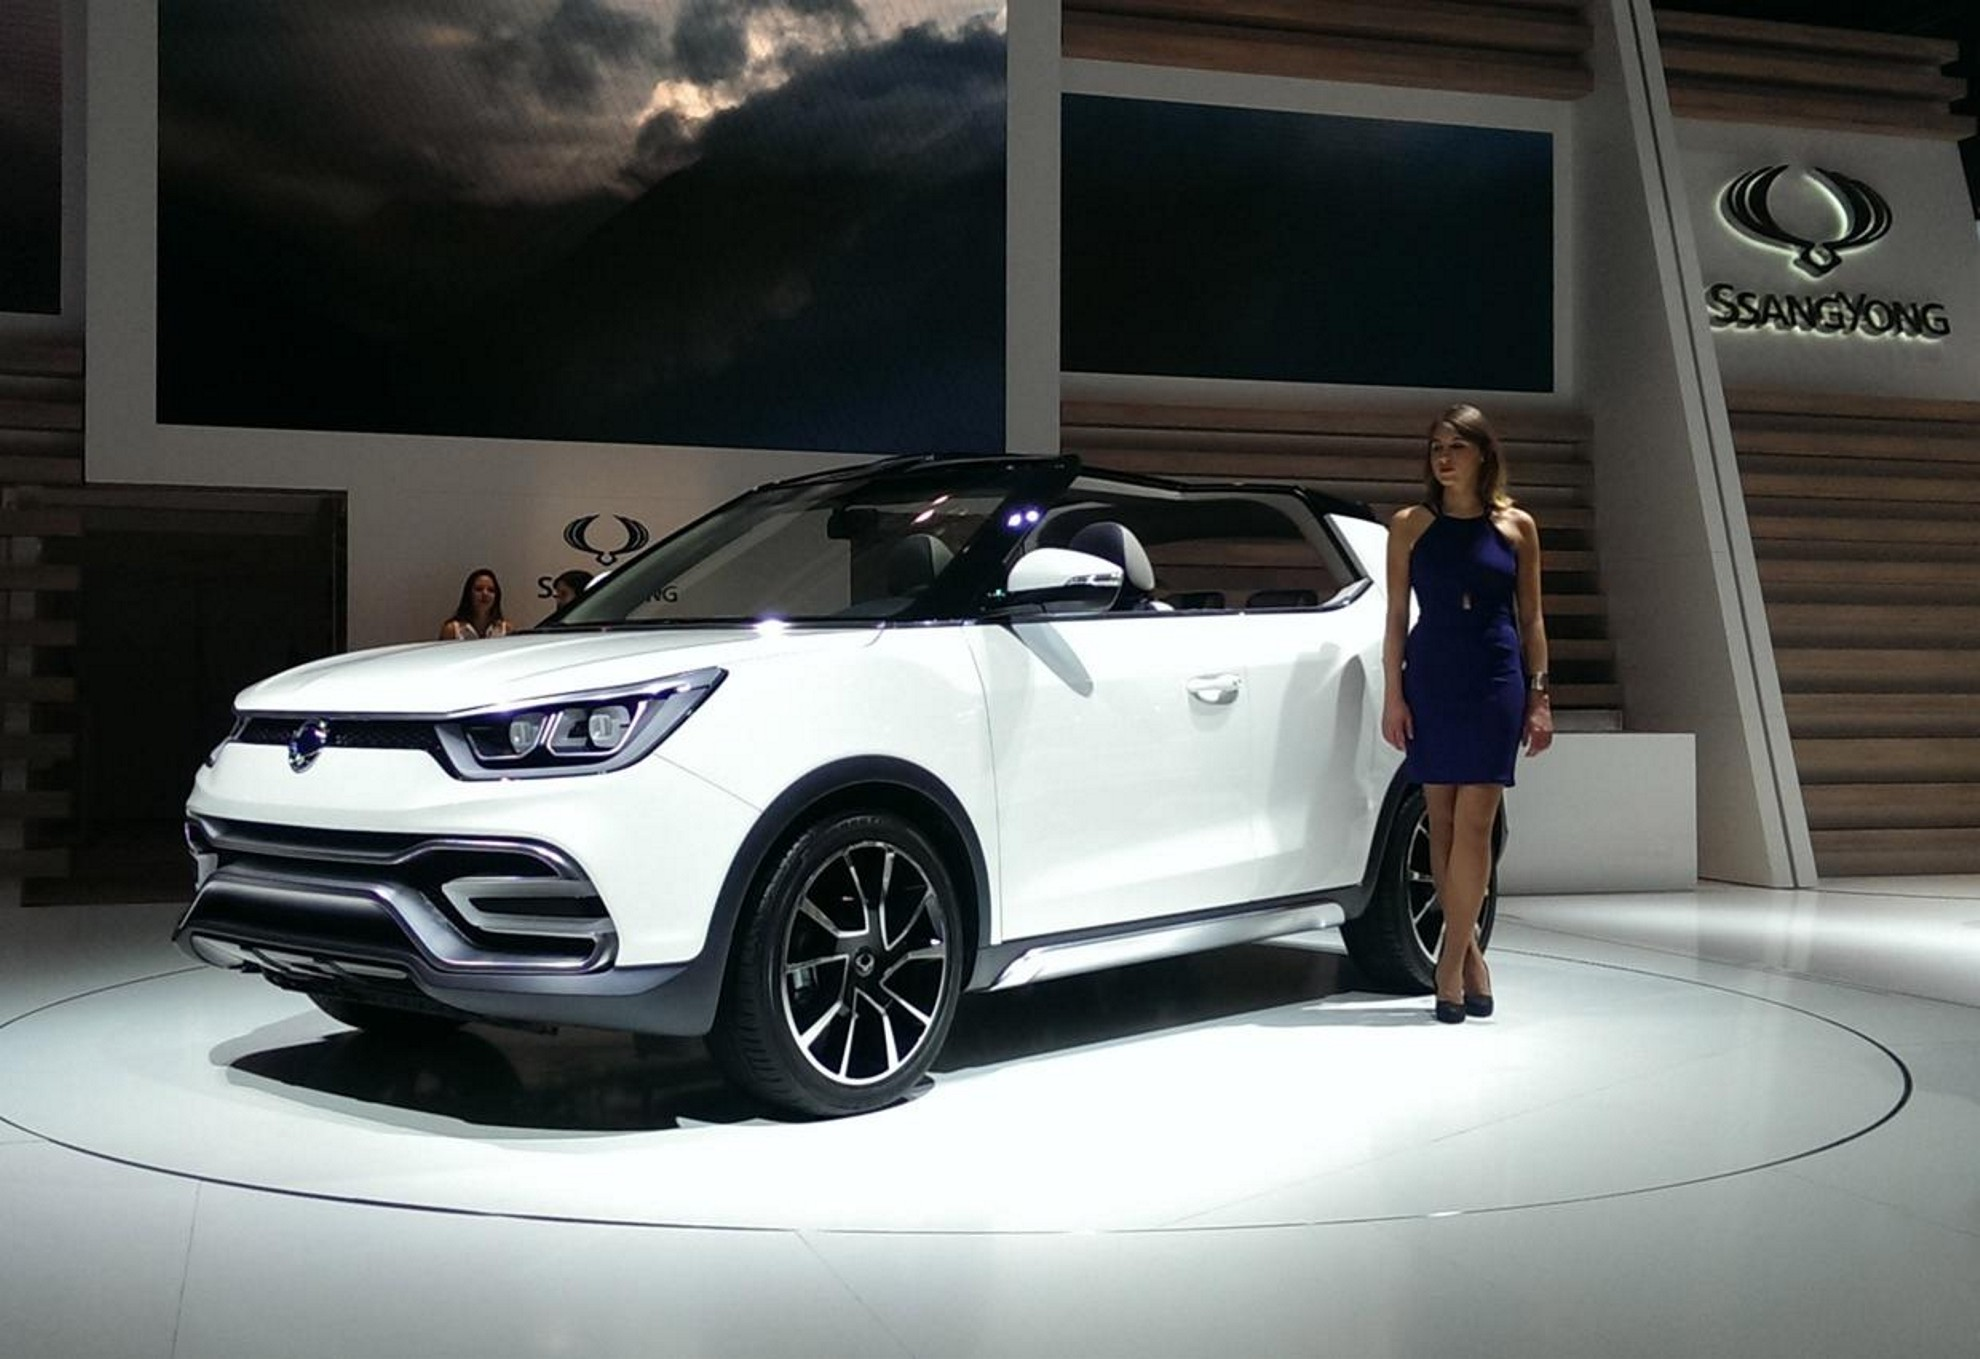 2015-Ssangyong-XIV-Air